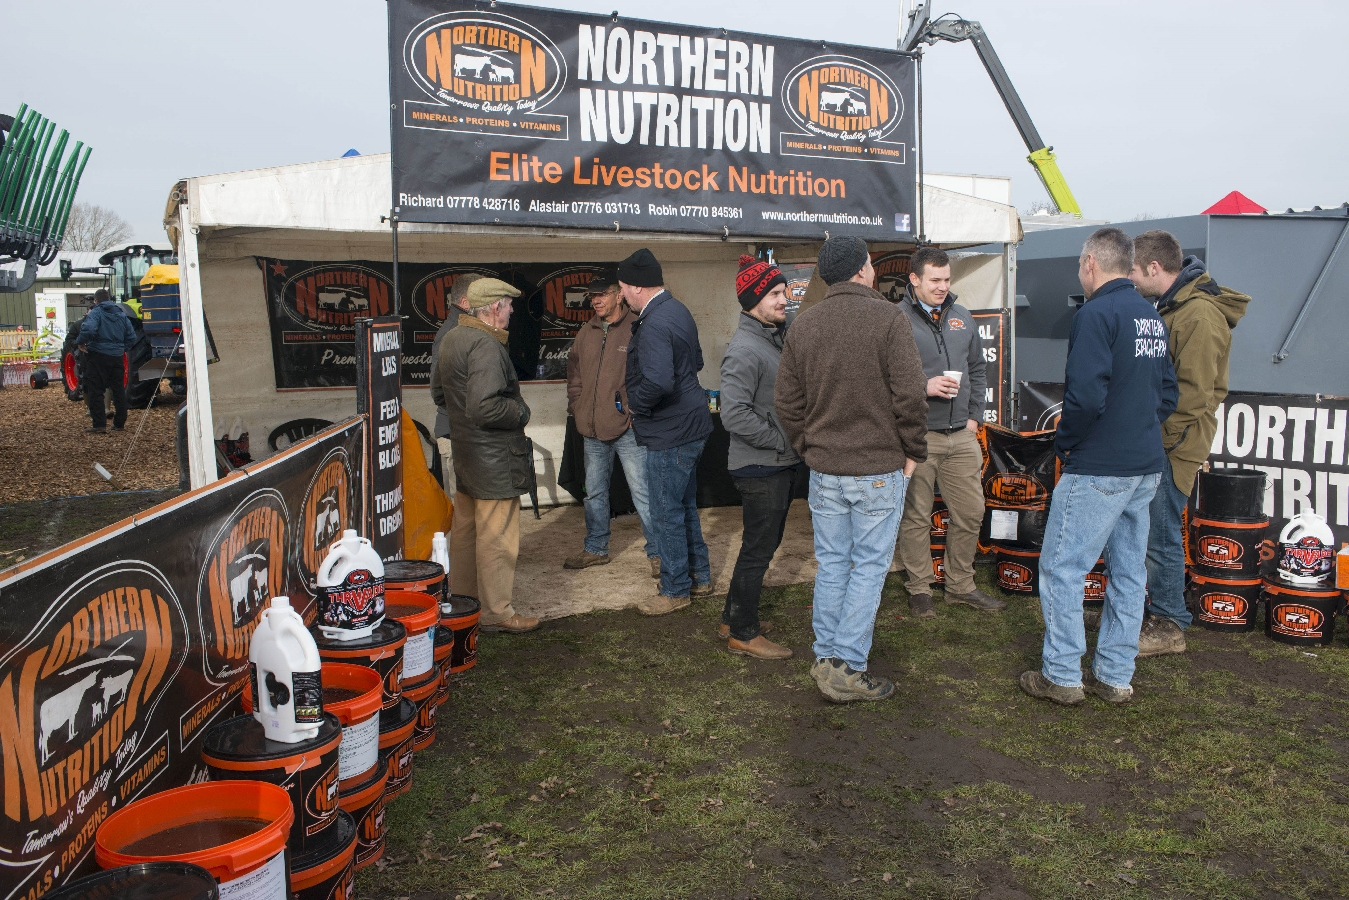 Y.A.M.S. 2019 Yorkshire agricultural machinery show at York auction centre